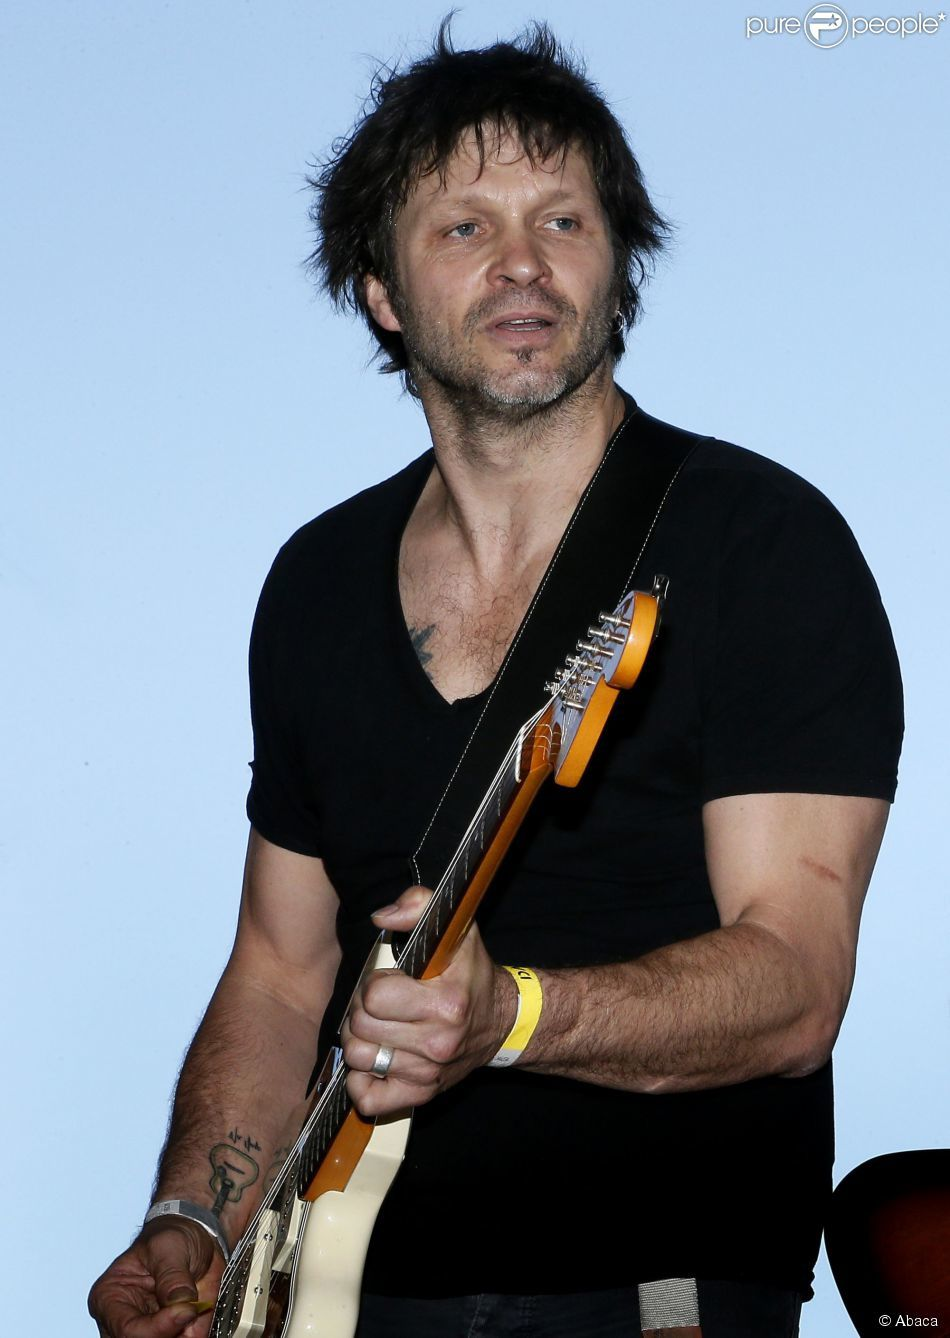 Bertrand Cantat, singer, lyricist and a founding member of Noir Désir.